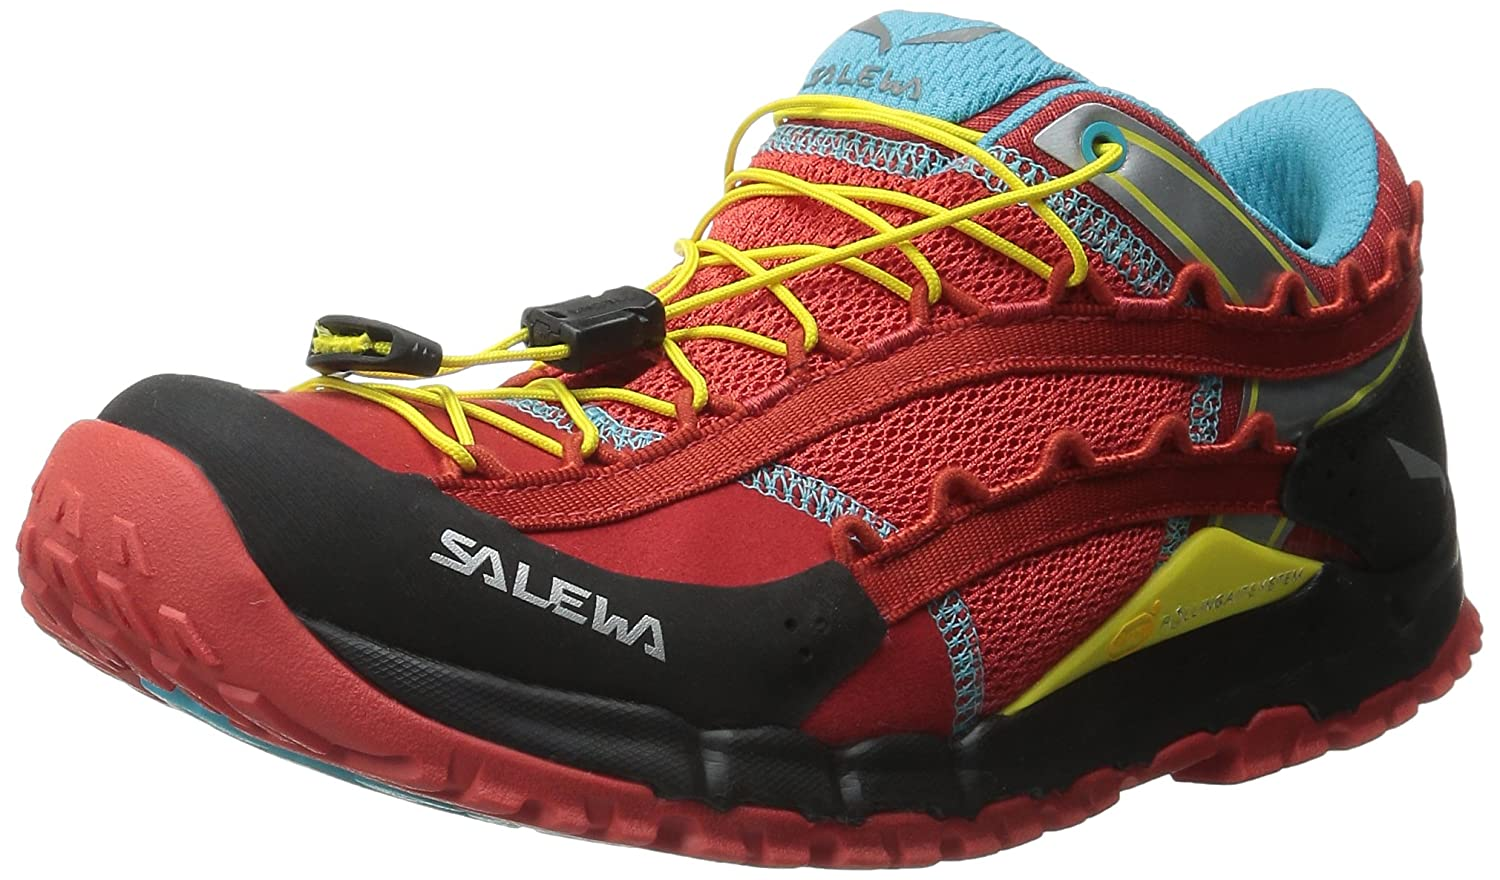 Salewa Damen Ws Speed Ascent Turnschuhe